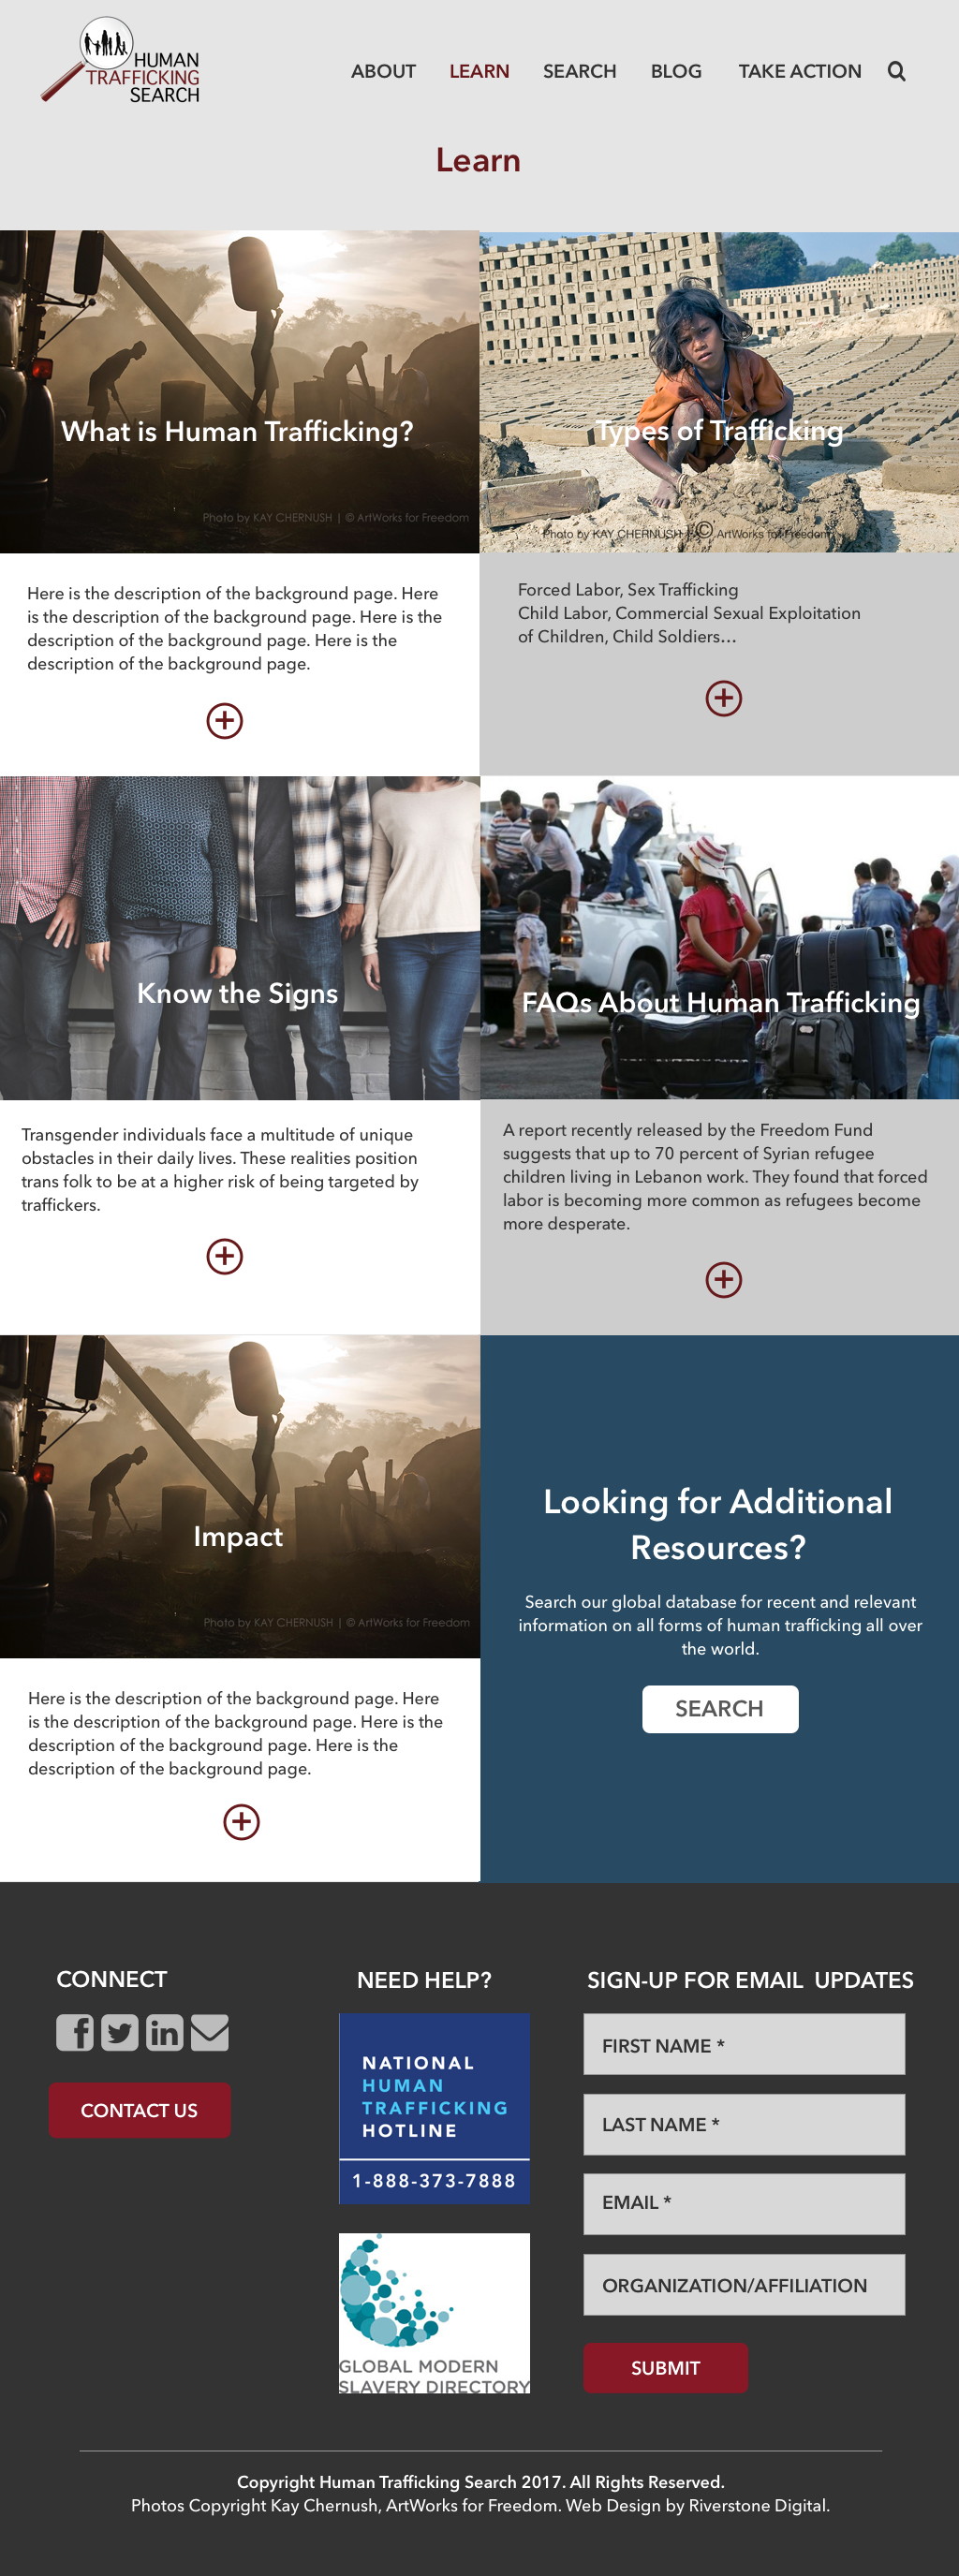 Learn Landing Page.png